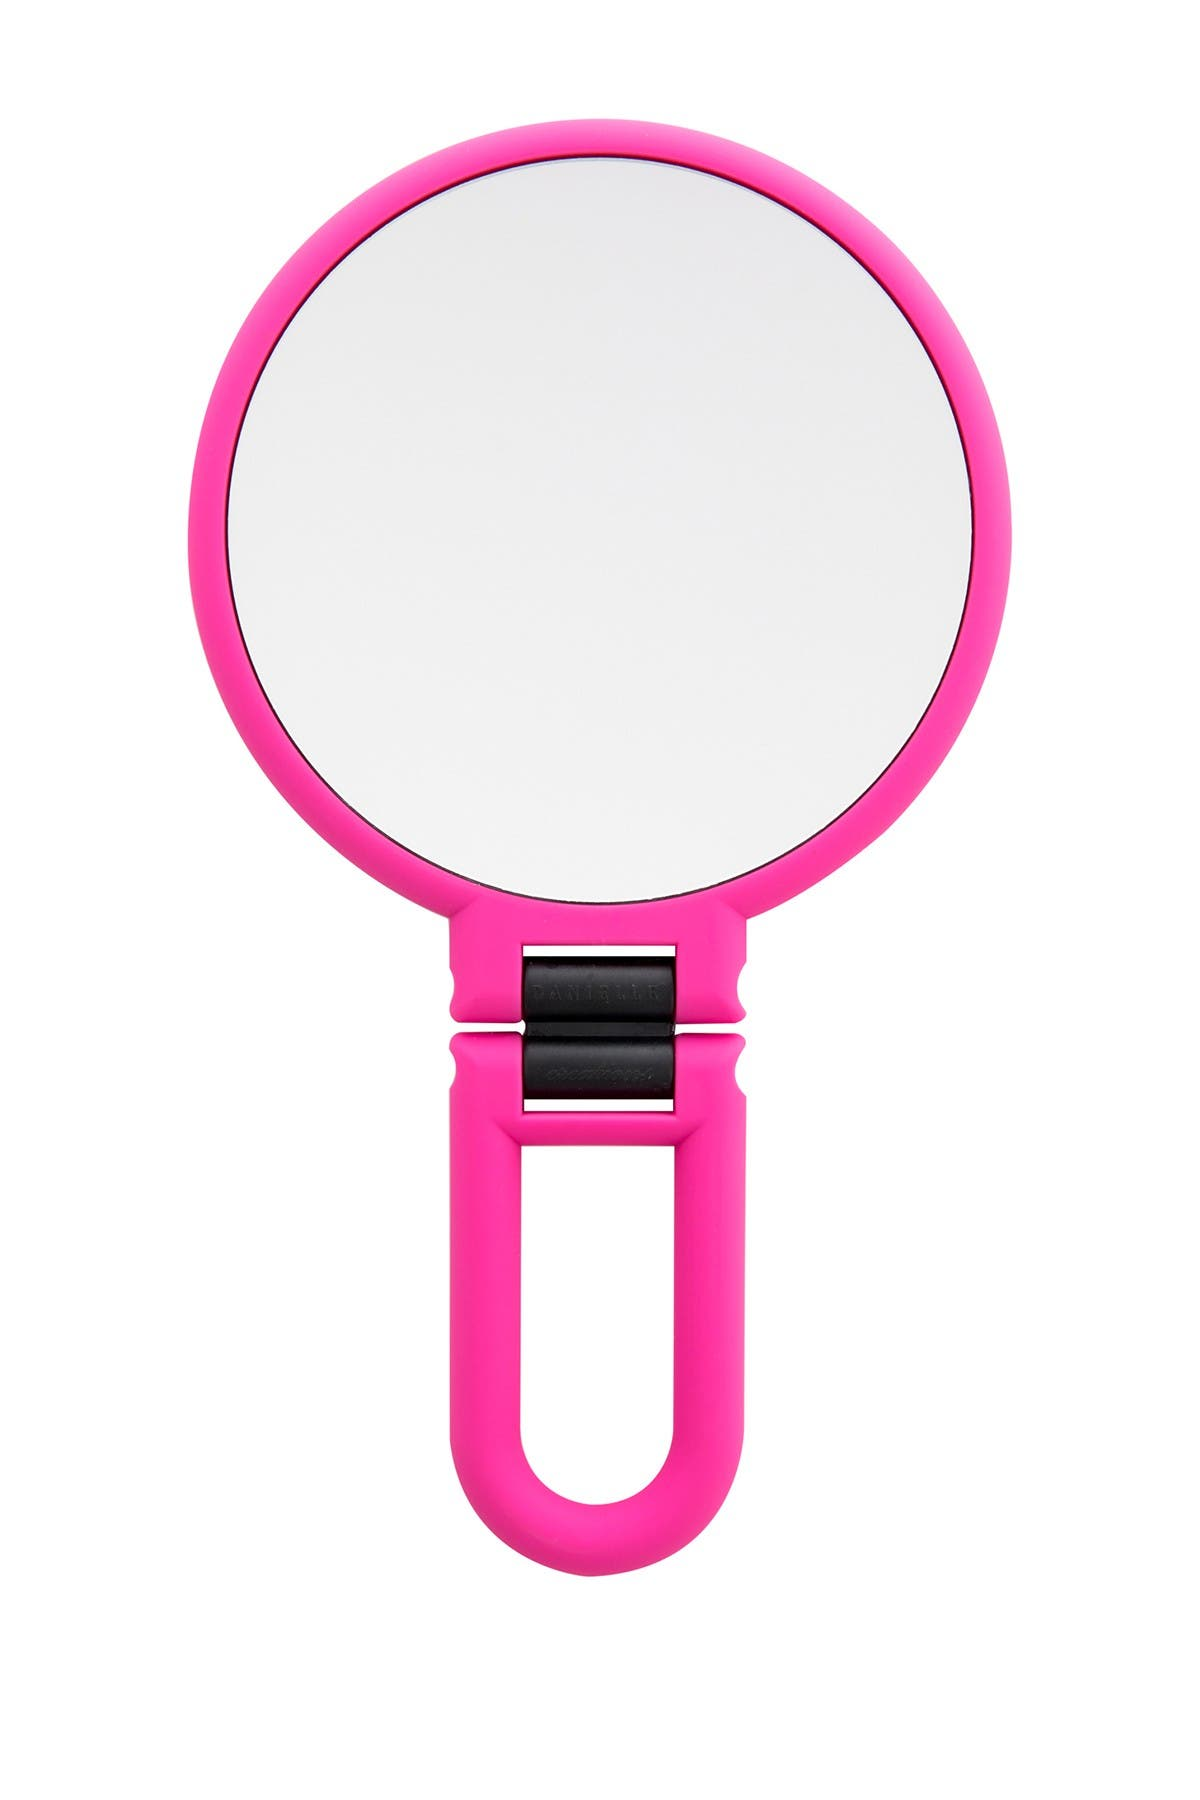 Image of UPPER CANADA SOAPS Danielle Soft Touch Hand Held Foldable Mirror - Pink